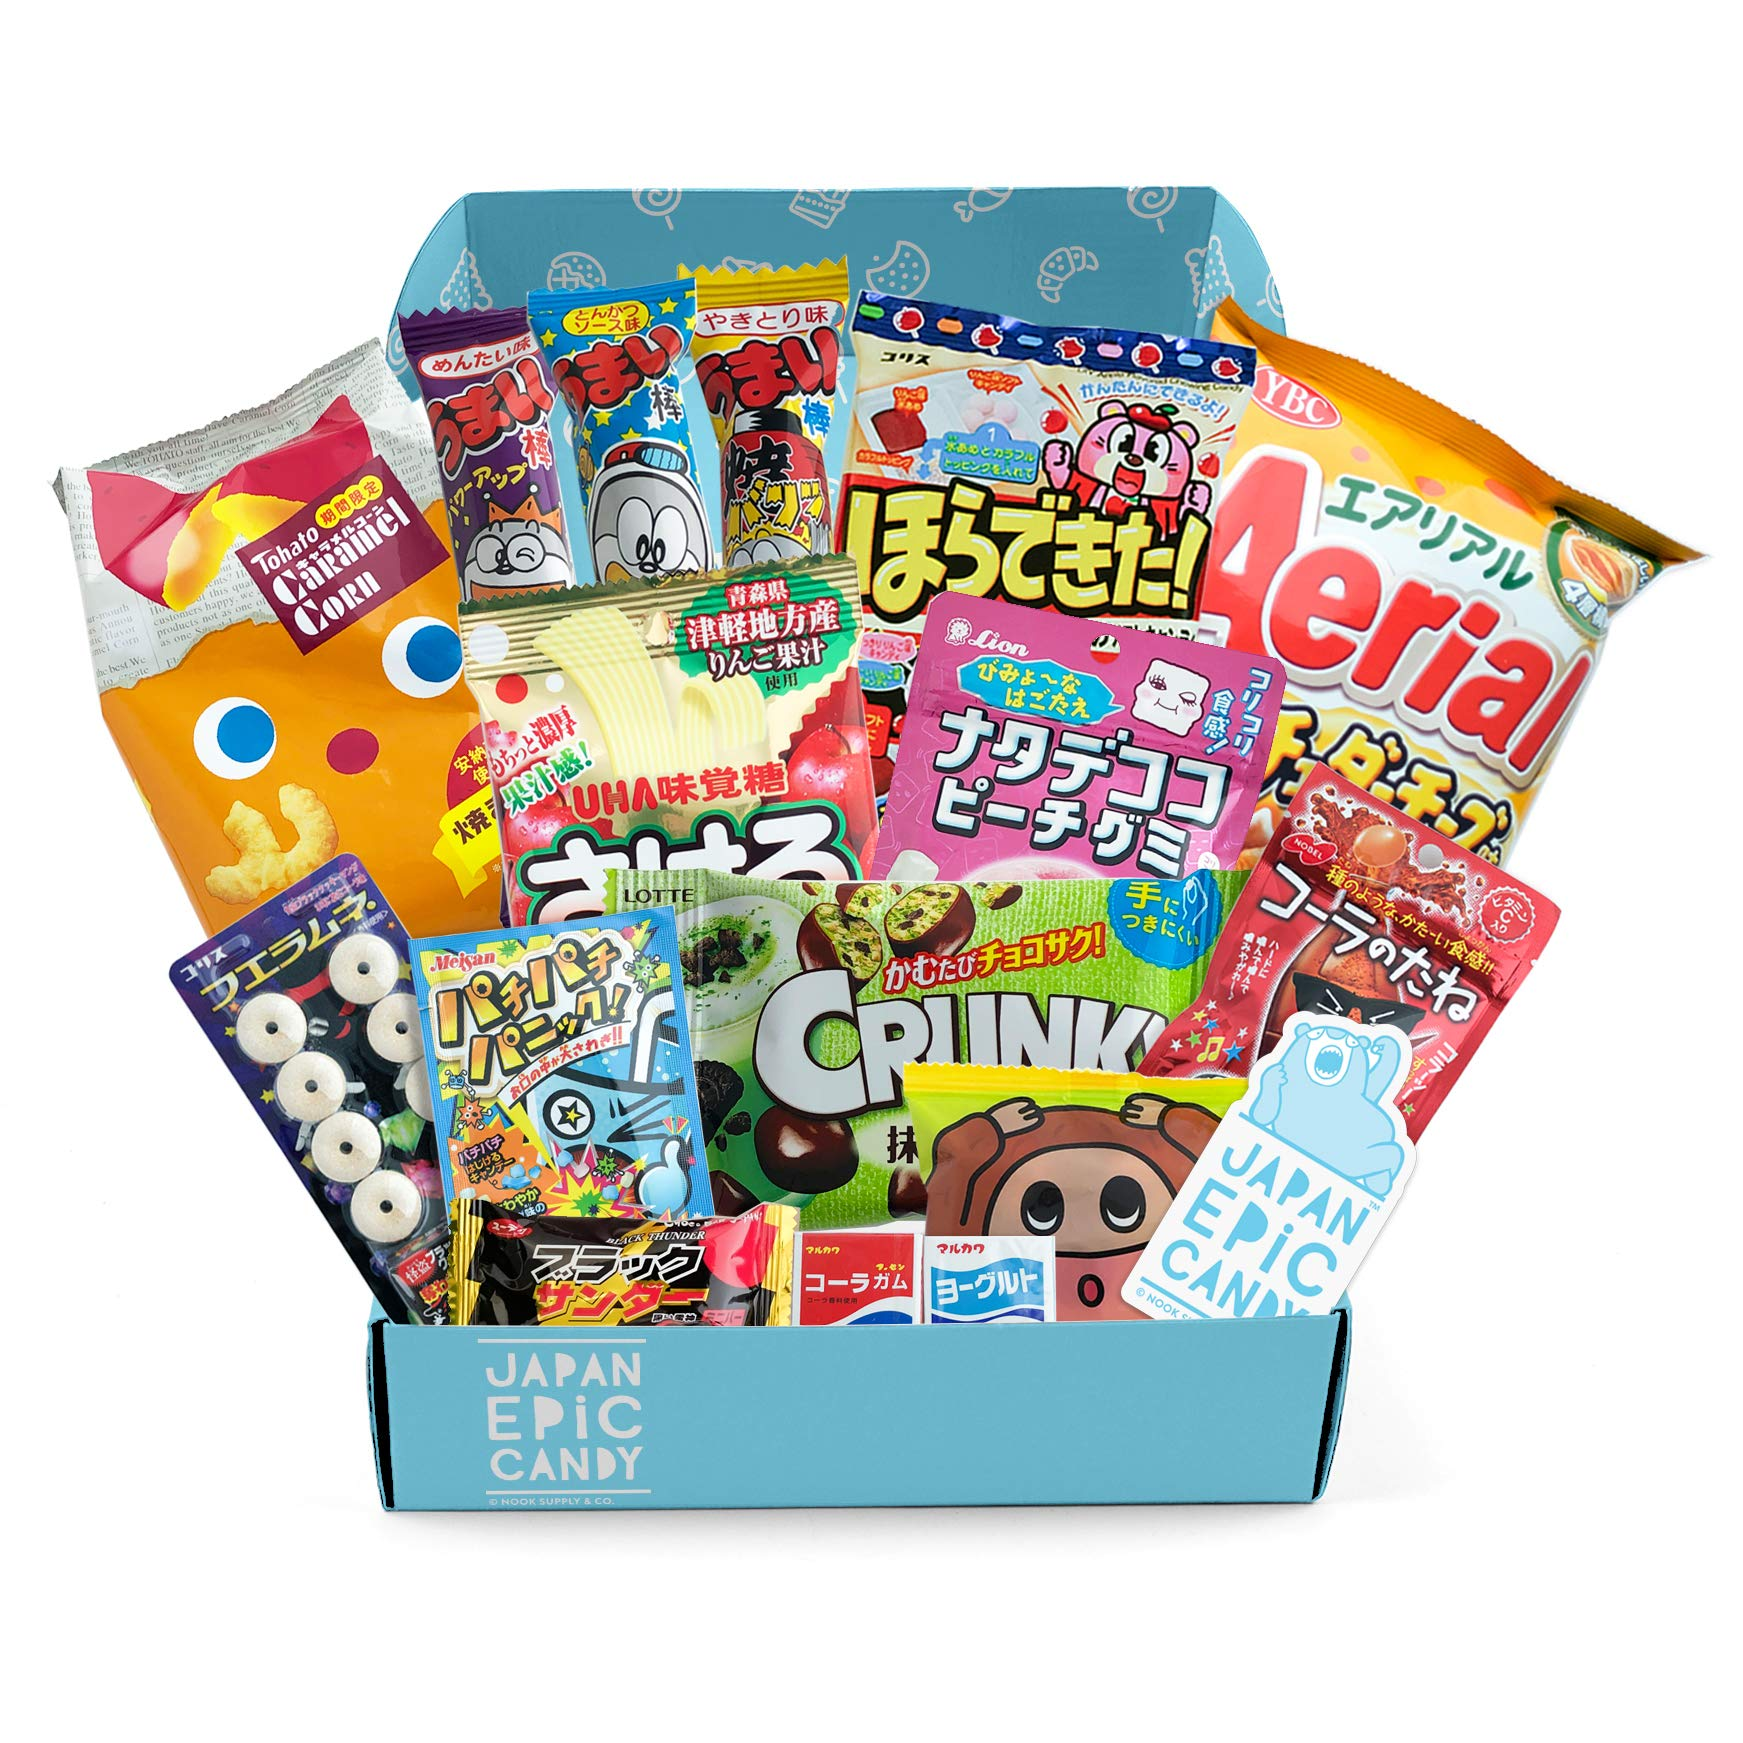 Japanese Candy Assortment - Premium Selection of Candy and Snacks Imported from Japan - DIY, Gummy, Sours, Sweets, Crackers - ''Japan Epic Candy'' (Original)